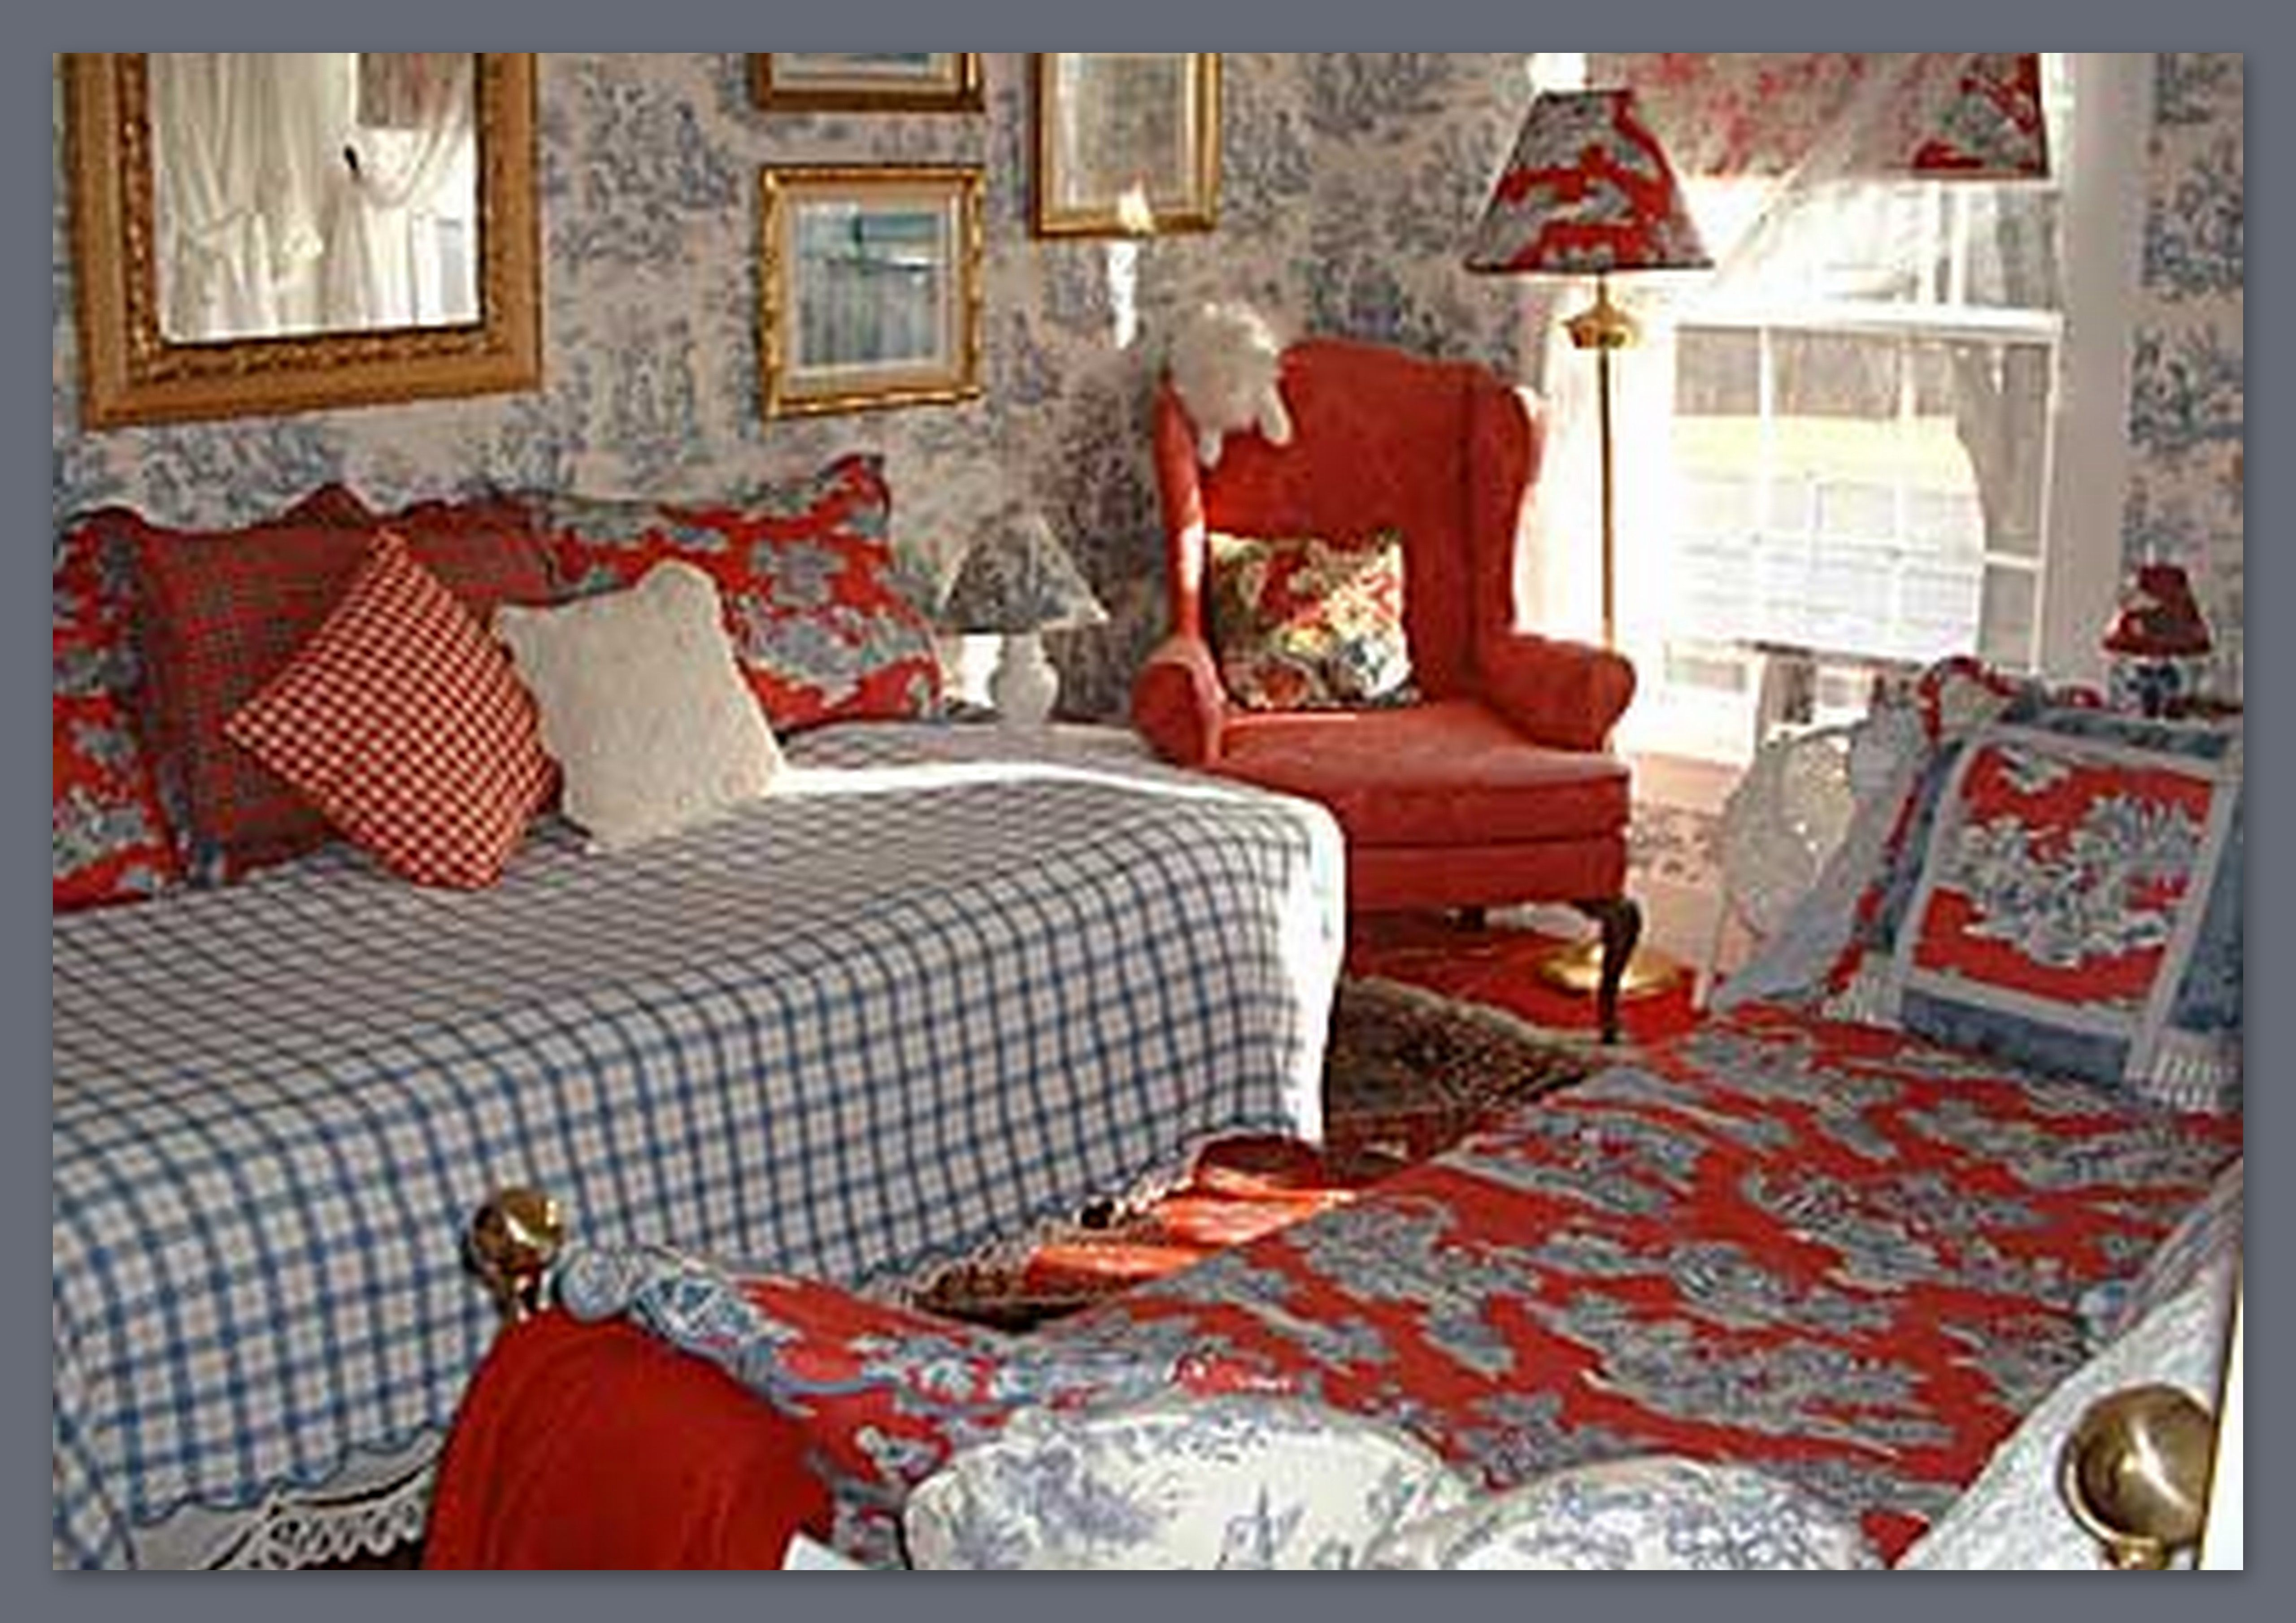 Bedroom Decorating Ideas Totally Toile: Red And Blue Toile